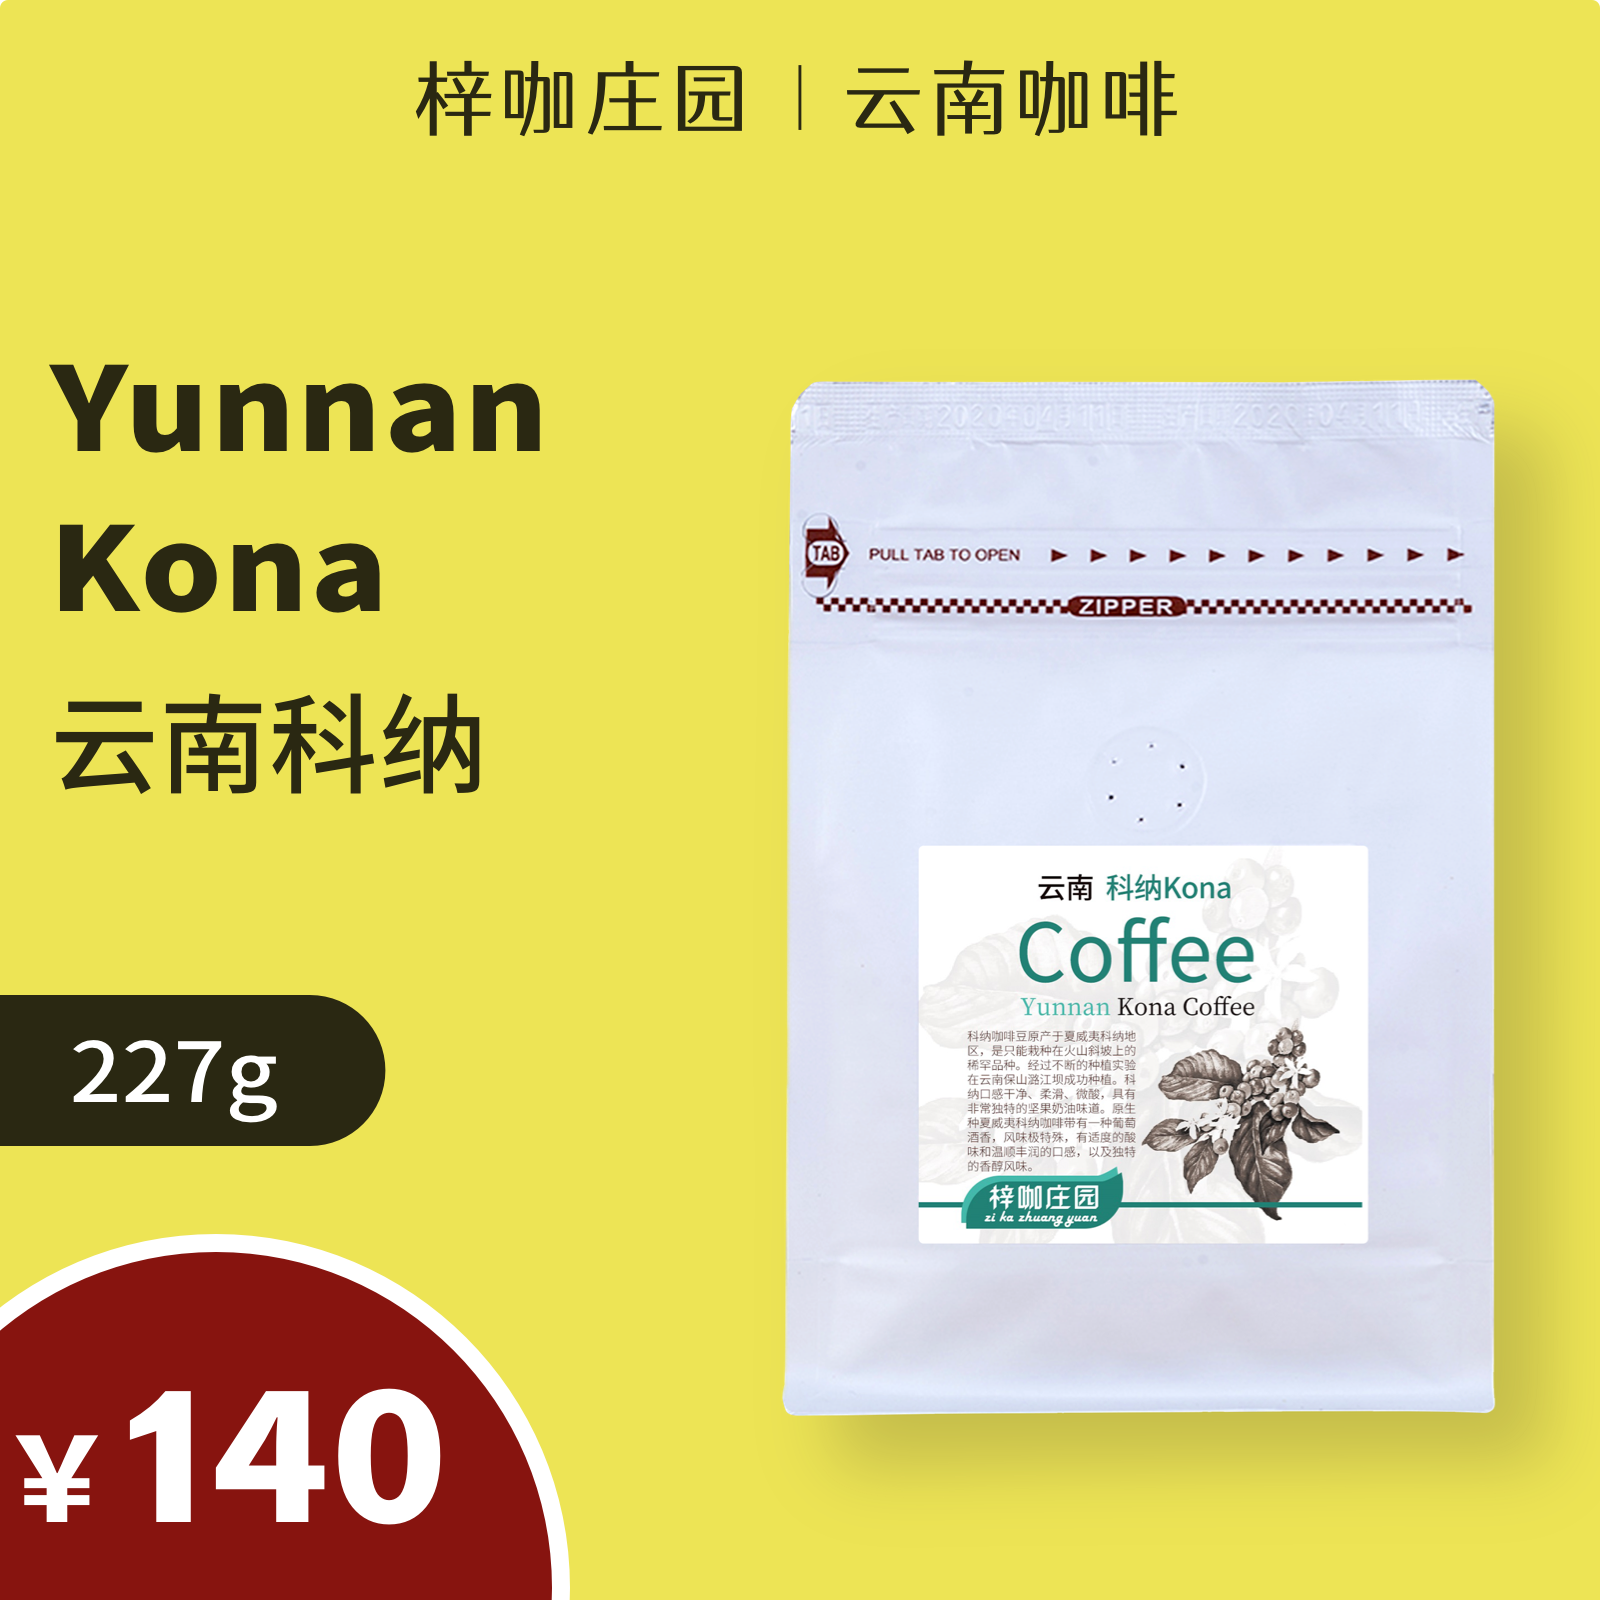 Yunnan Kona 227g beans, a new AAA high altitude fresh roasted variety of Yunnan coffee beans from Zika Manor